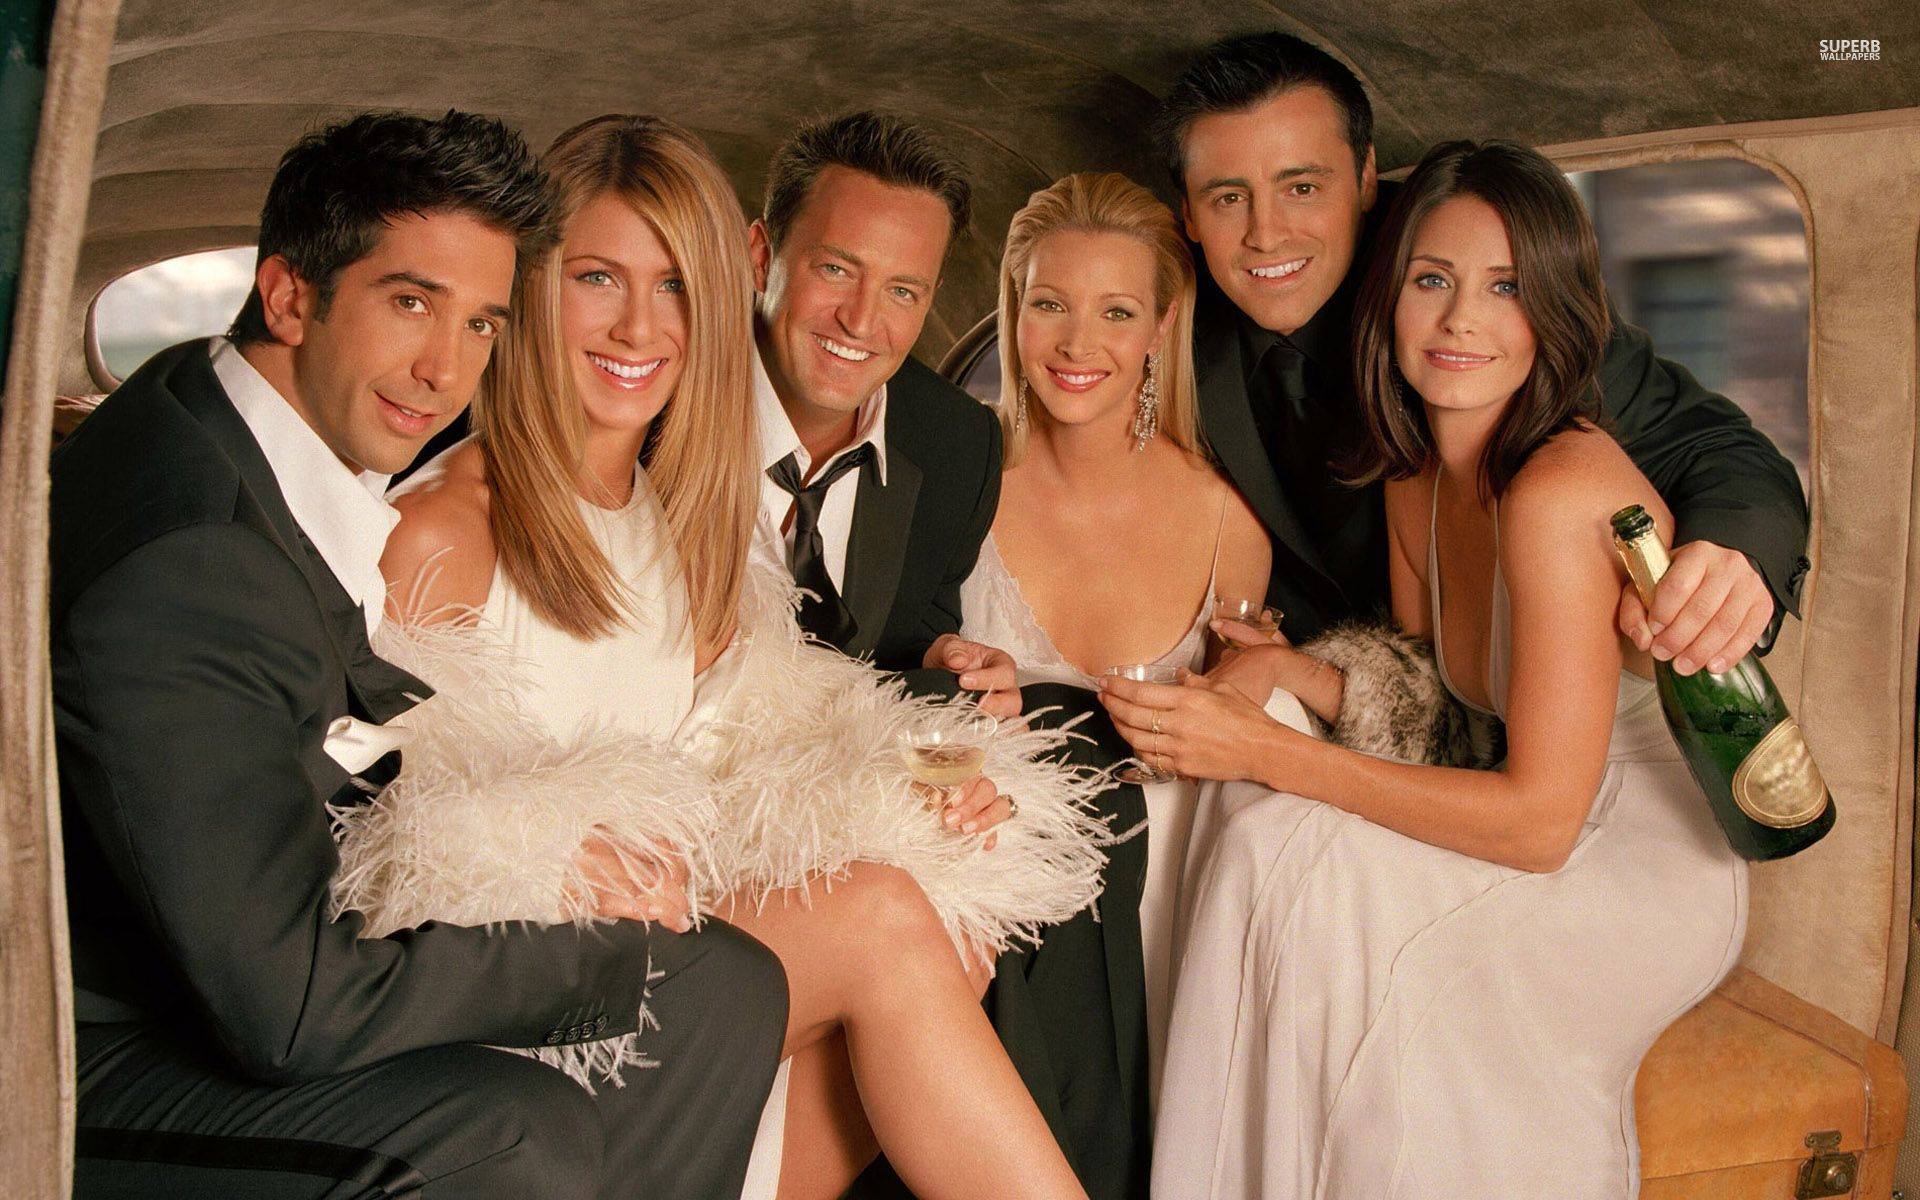 Friends Tv Show 4K Wallpaper The Big Photos 1920x1200